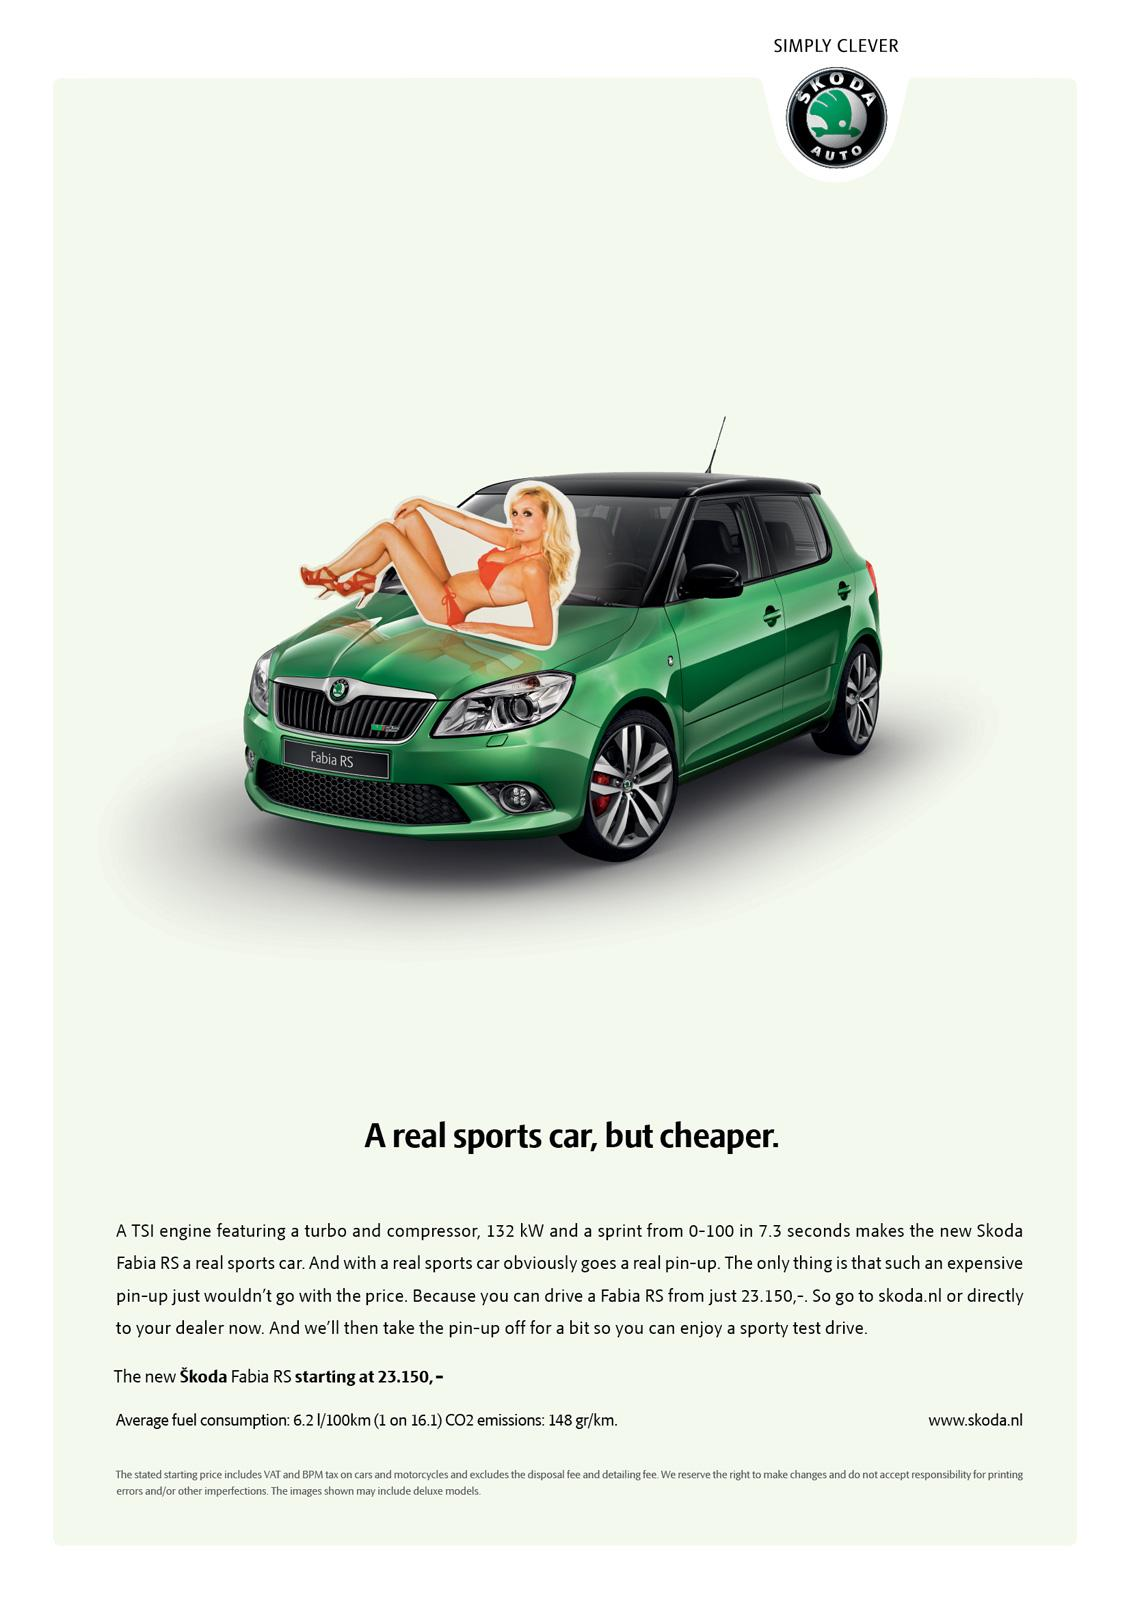 Skoda Print Ad -  A real sports car, but cheaper